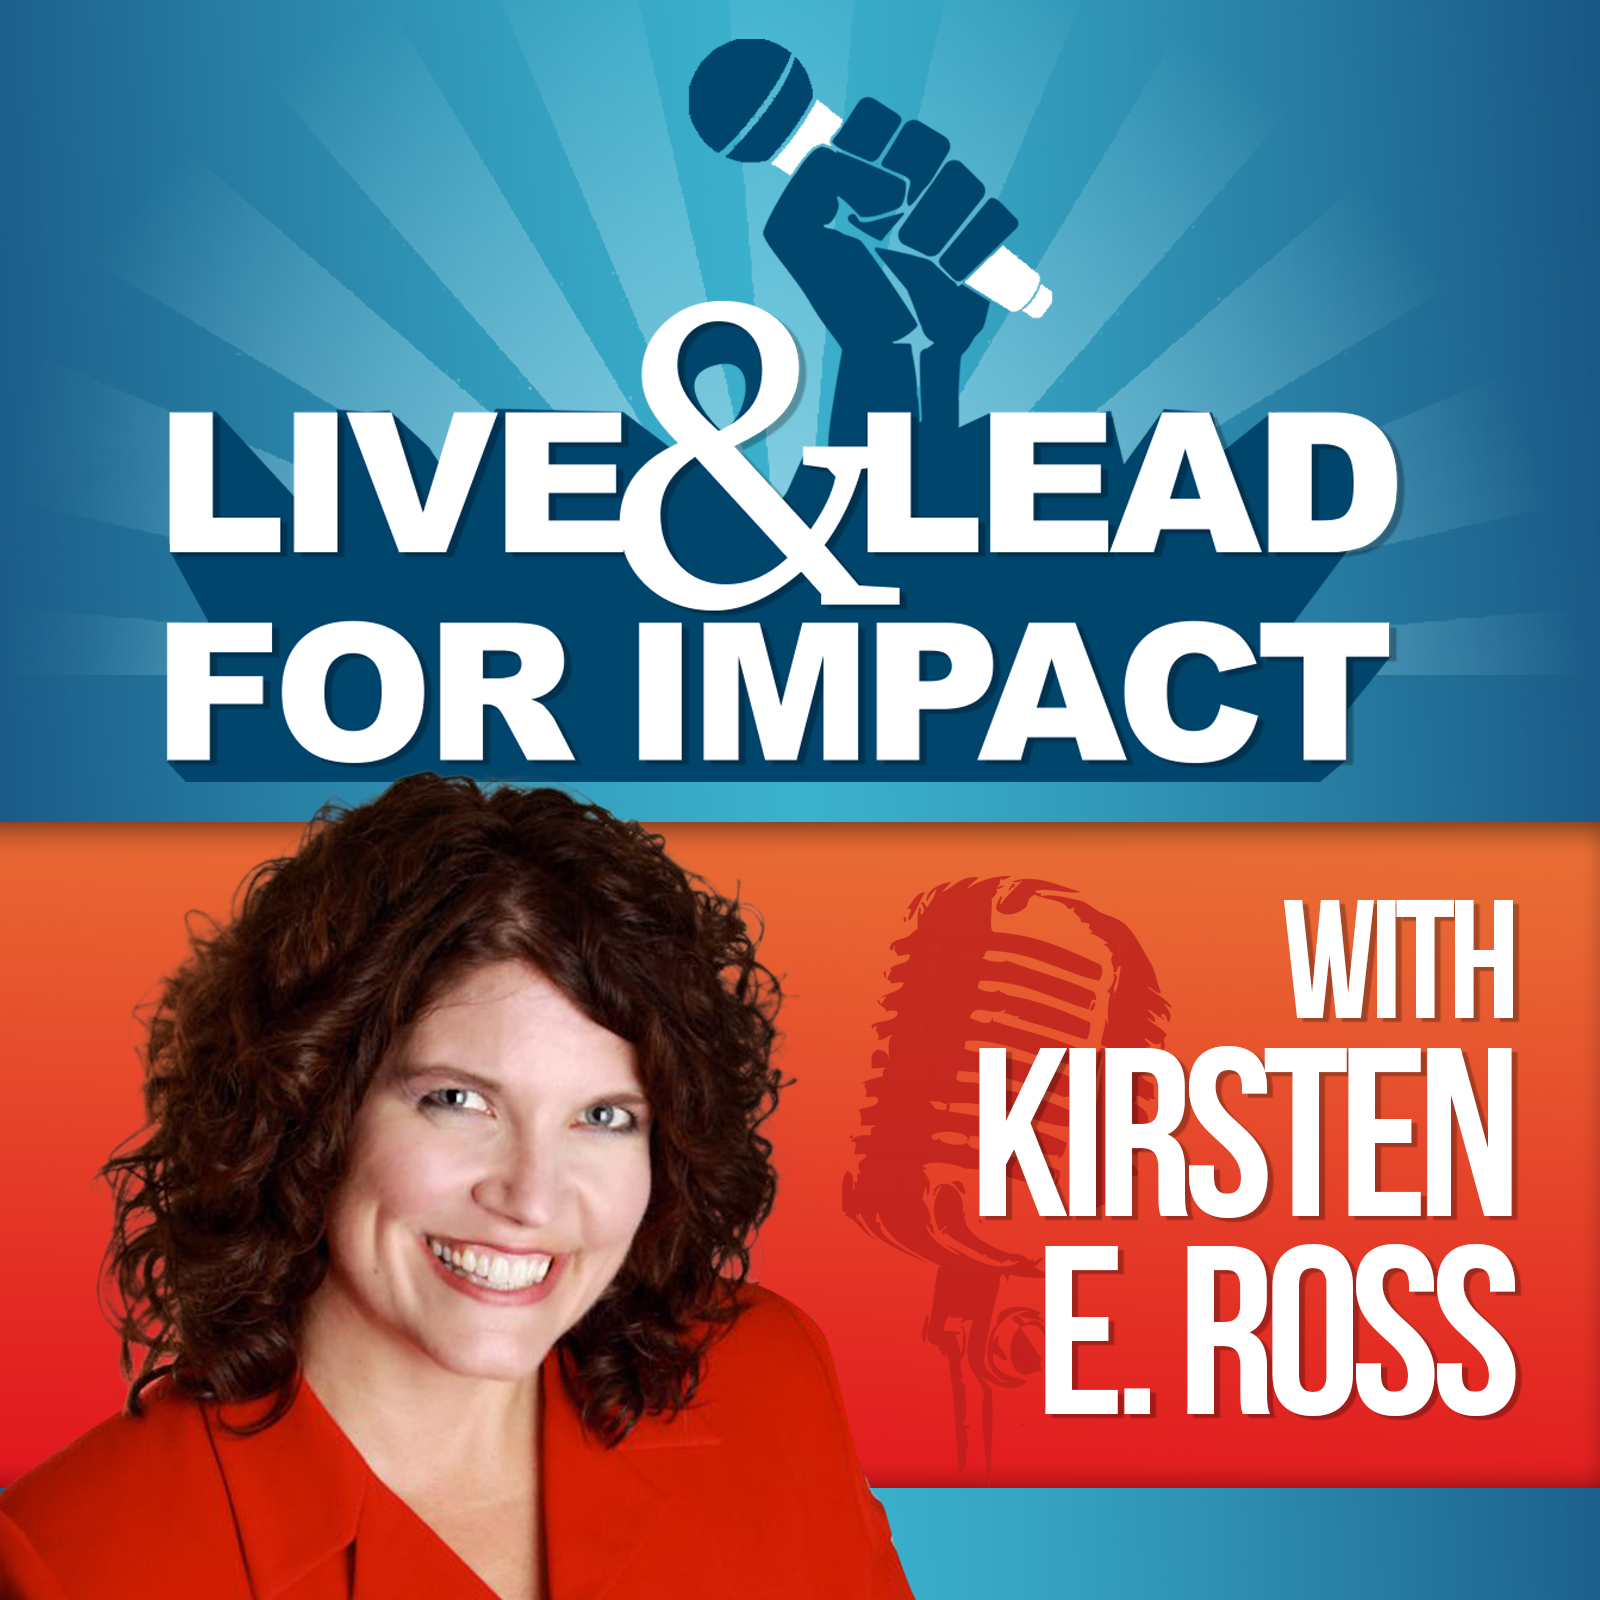 Live and Lead for Impact with Kirsten E. Ross  show image